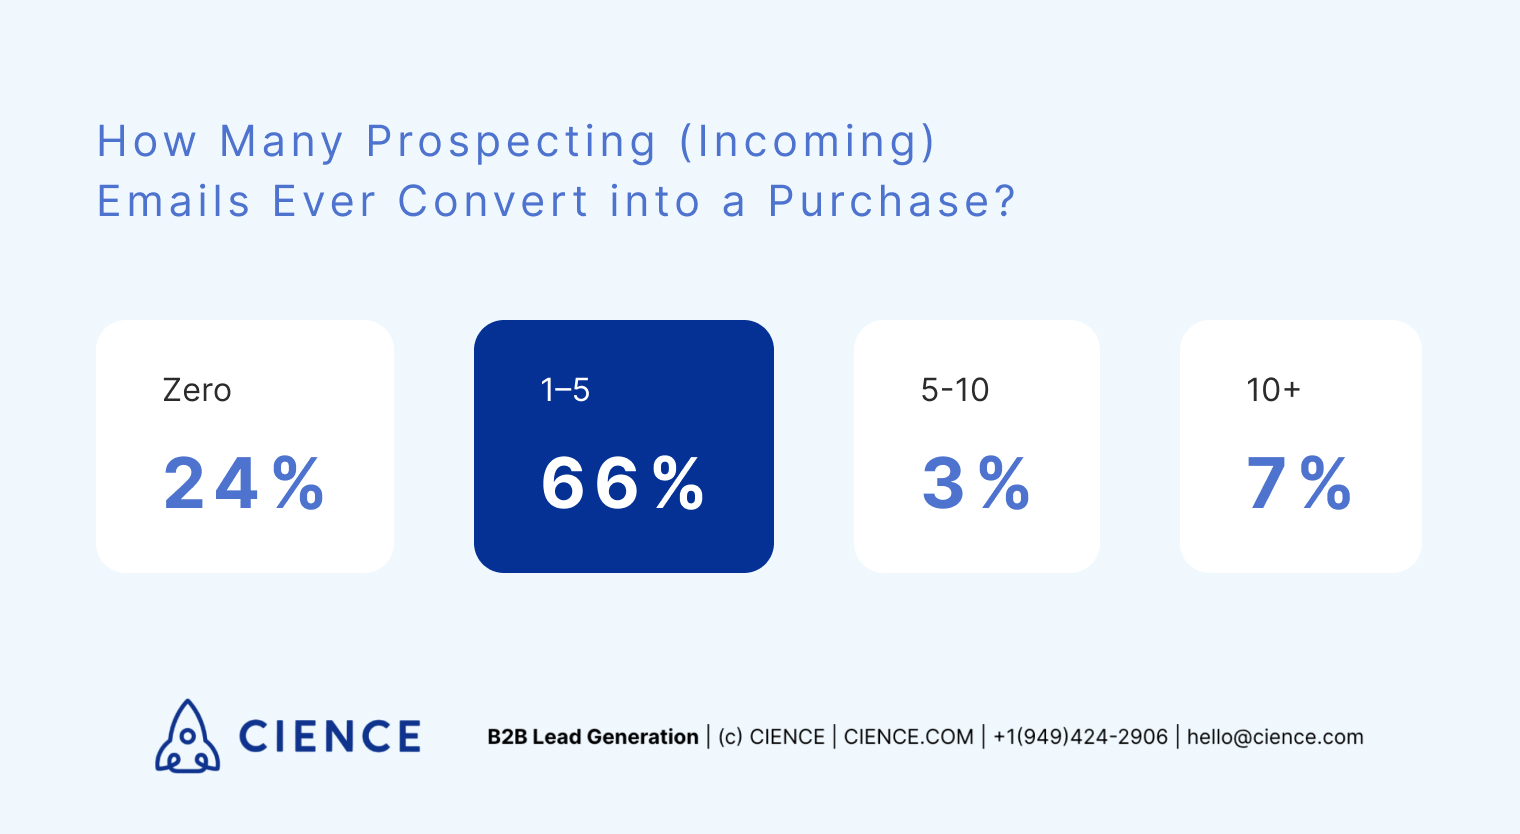 How many incoming prospecting emails are converted into pruchase? Survey